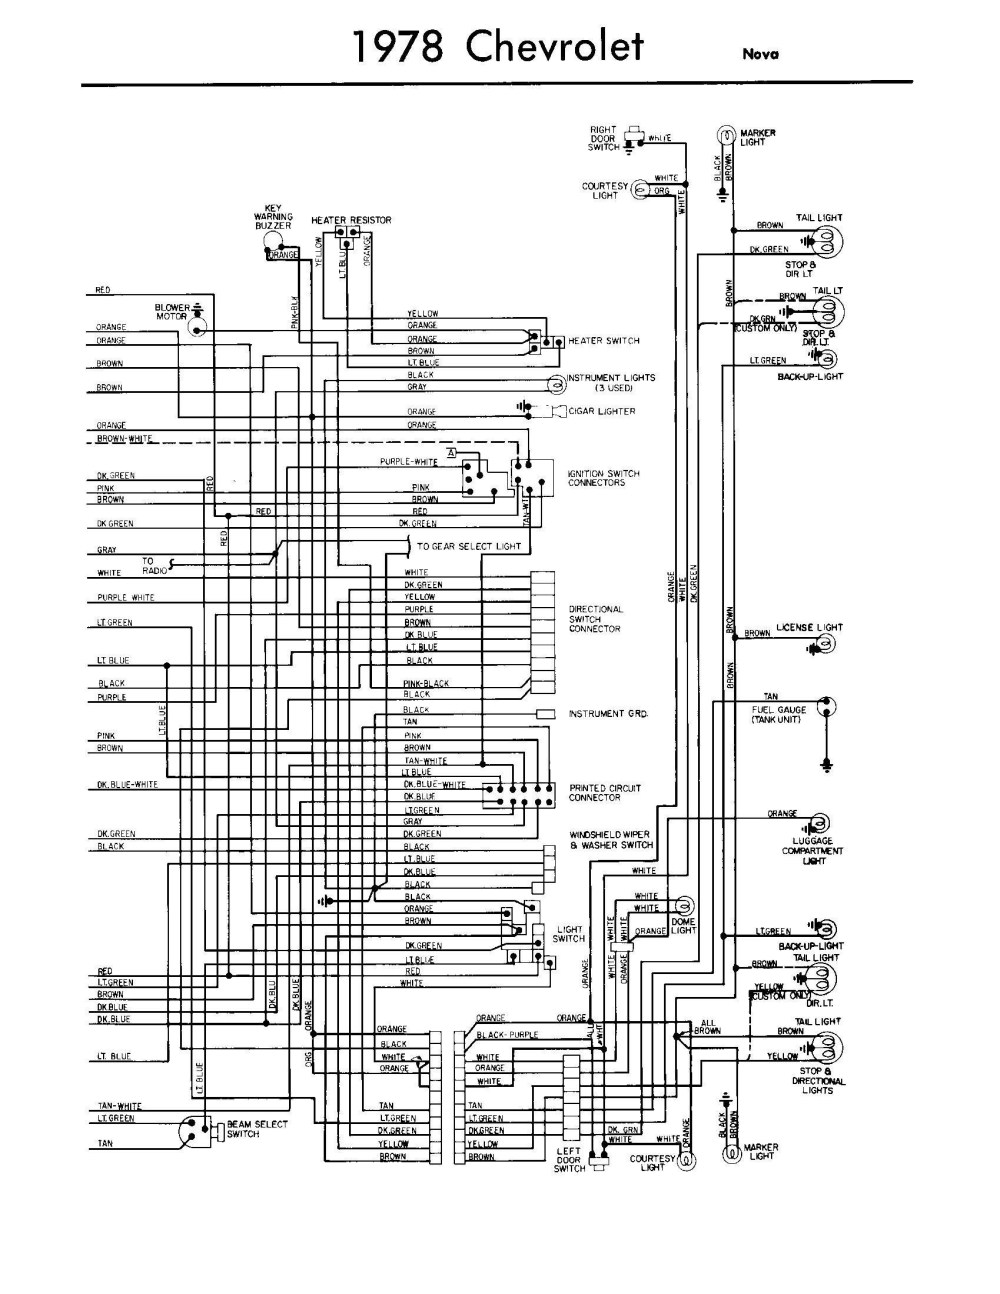 medium resolution of 1977 chevy pickup wiring diagram completed wiring diagrams gm headlight wiring diagram 1986 c10 ac wiring diagram